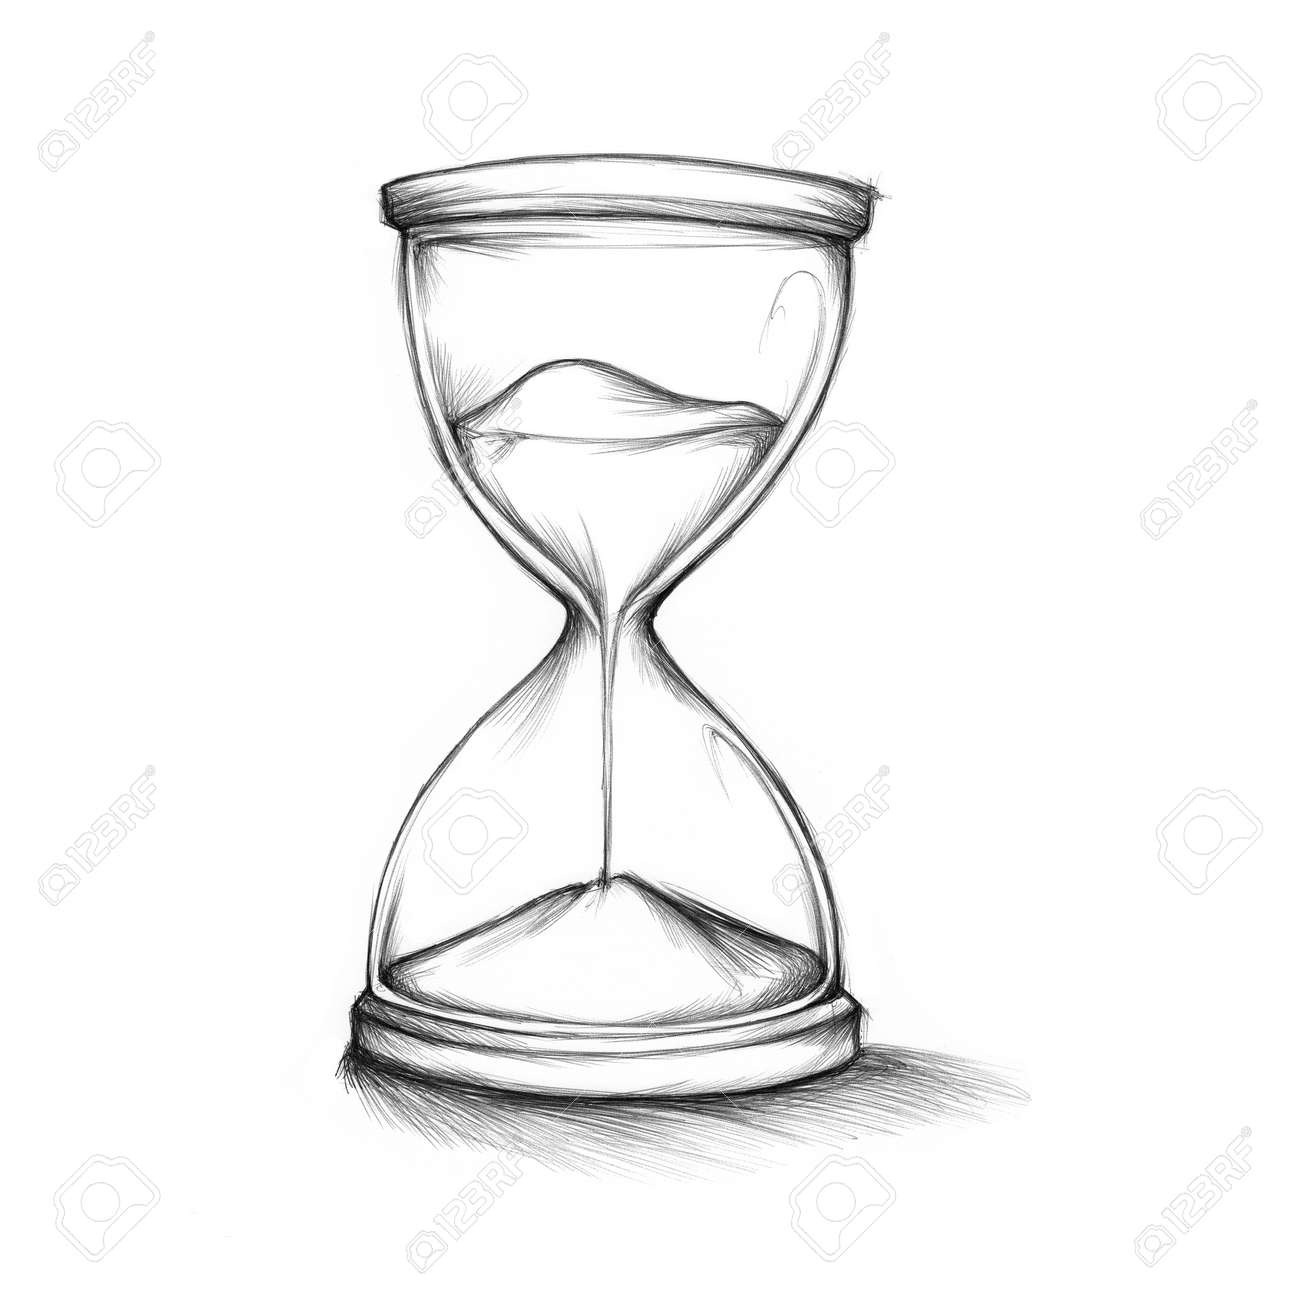 illustration of an hourglass with sand stock photo picture and Hourglass Art illustration illustration of an hourglass with sand